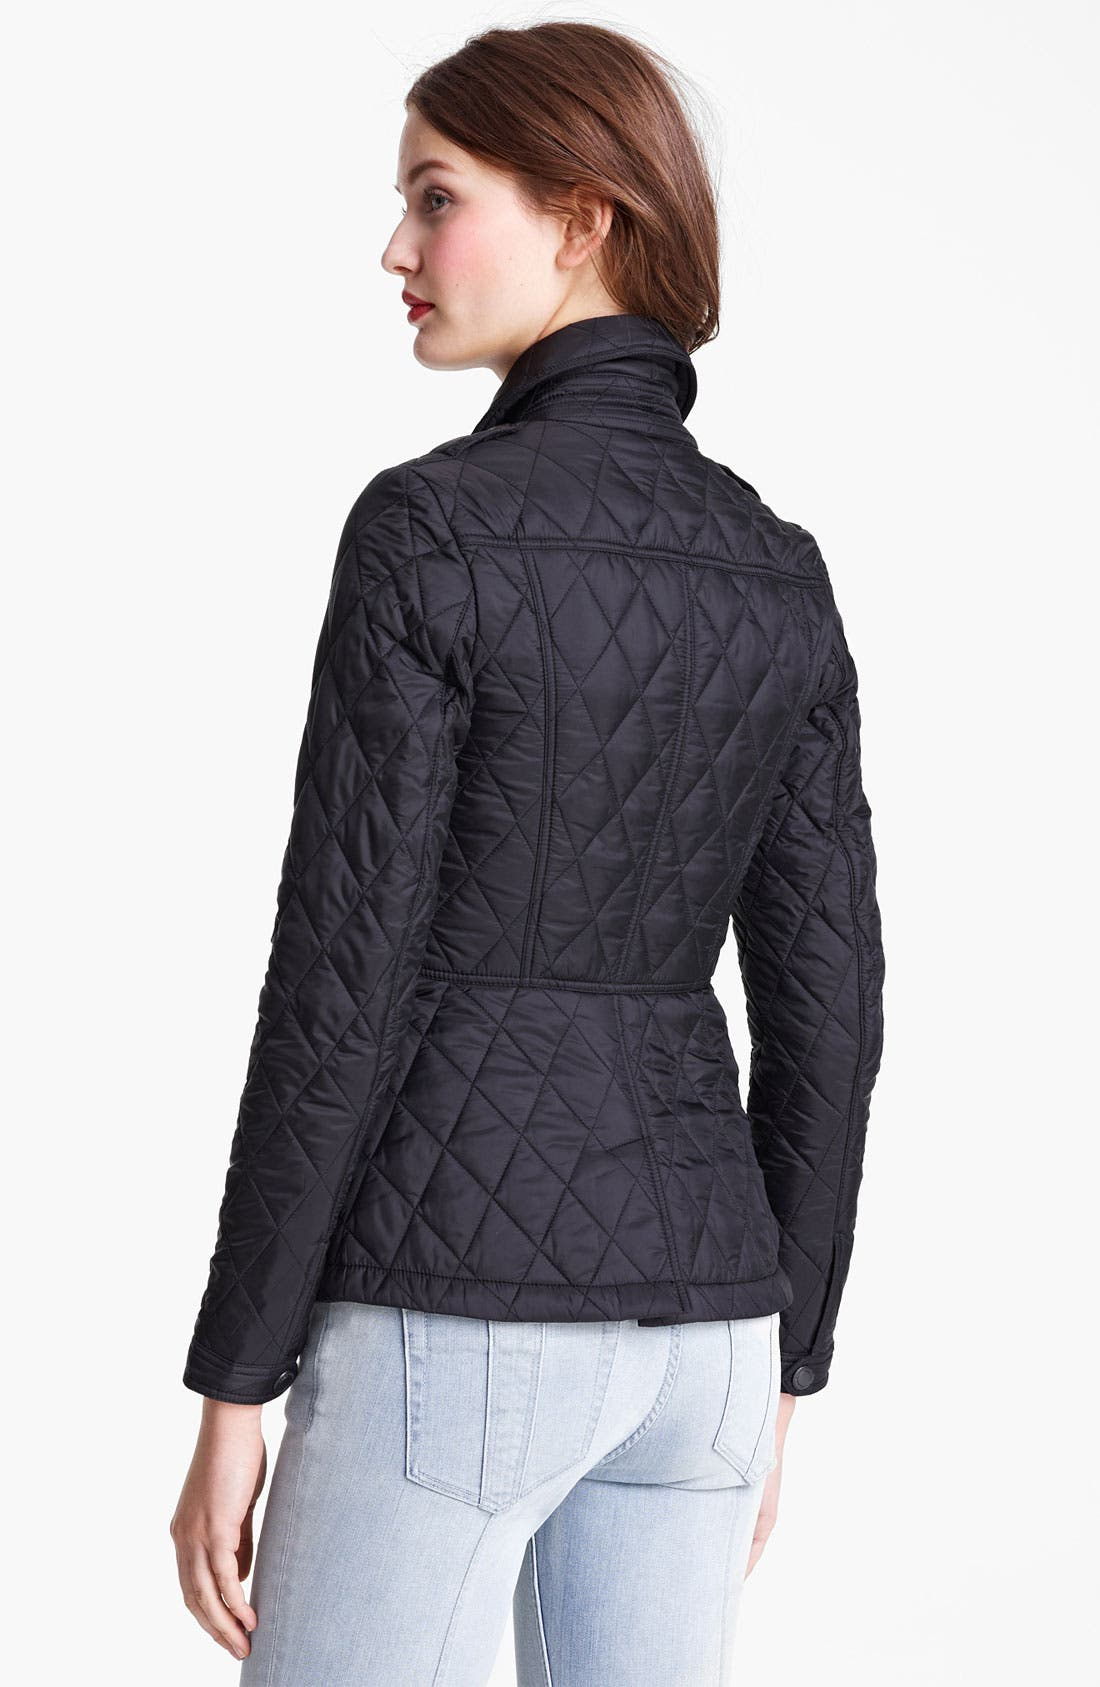 'Ivymoore' Quilted Zip Jacket,                             Alternate thumbnail 2, color,                             Black